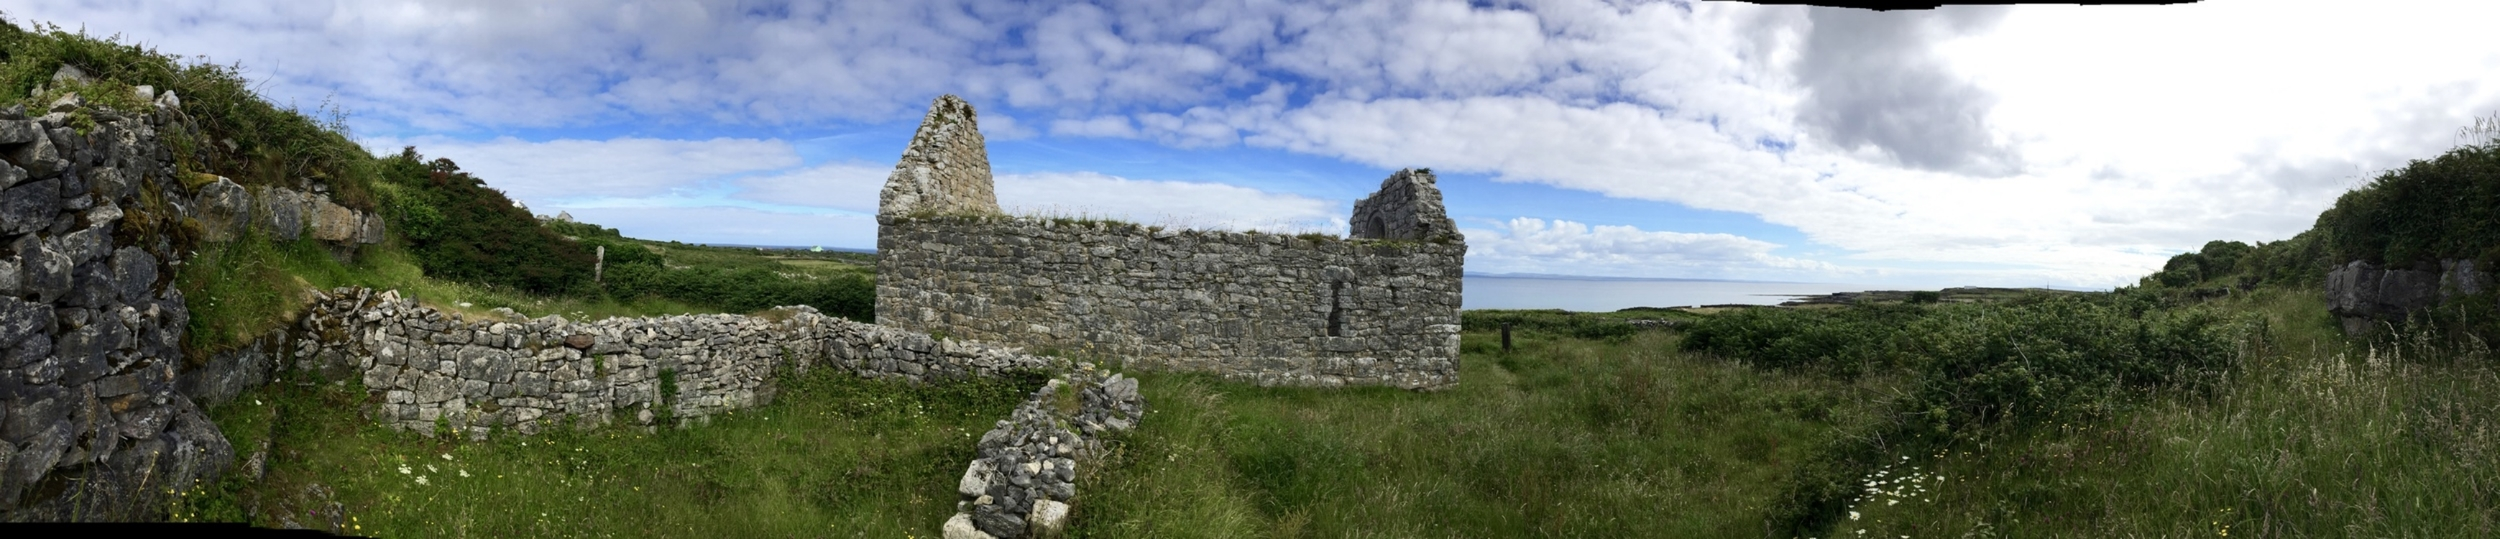 Teampall Chiárain ruins next door to our Airbnb on Inis Mór. This is where we said morning prayer on Sunday.